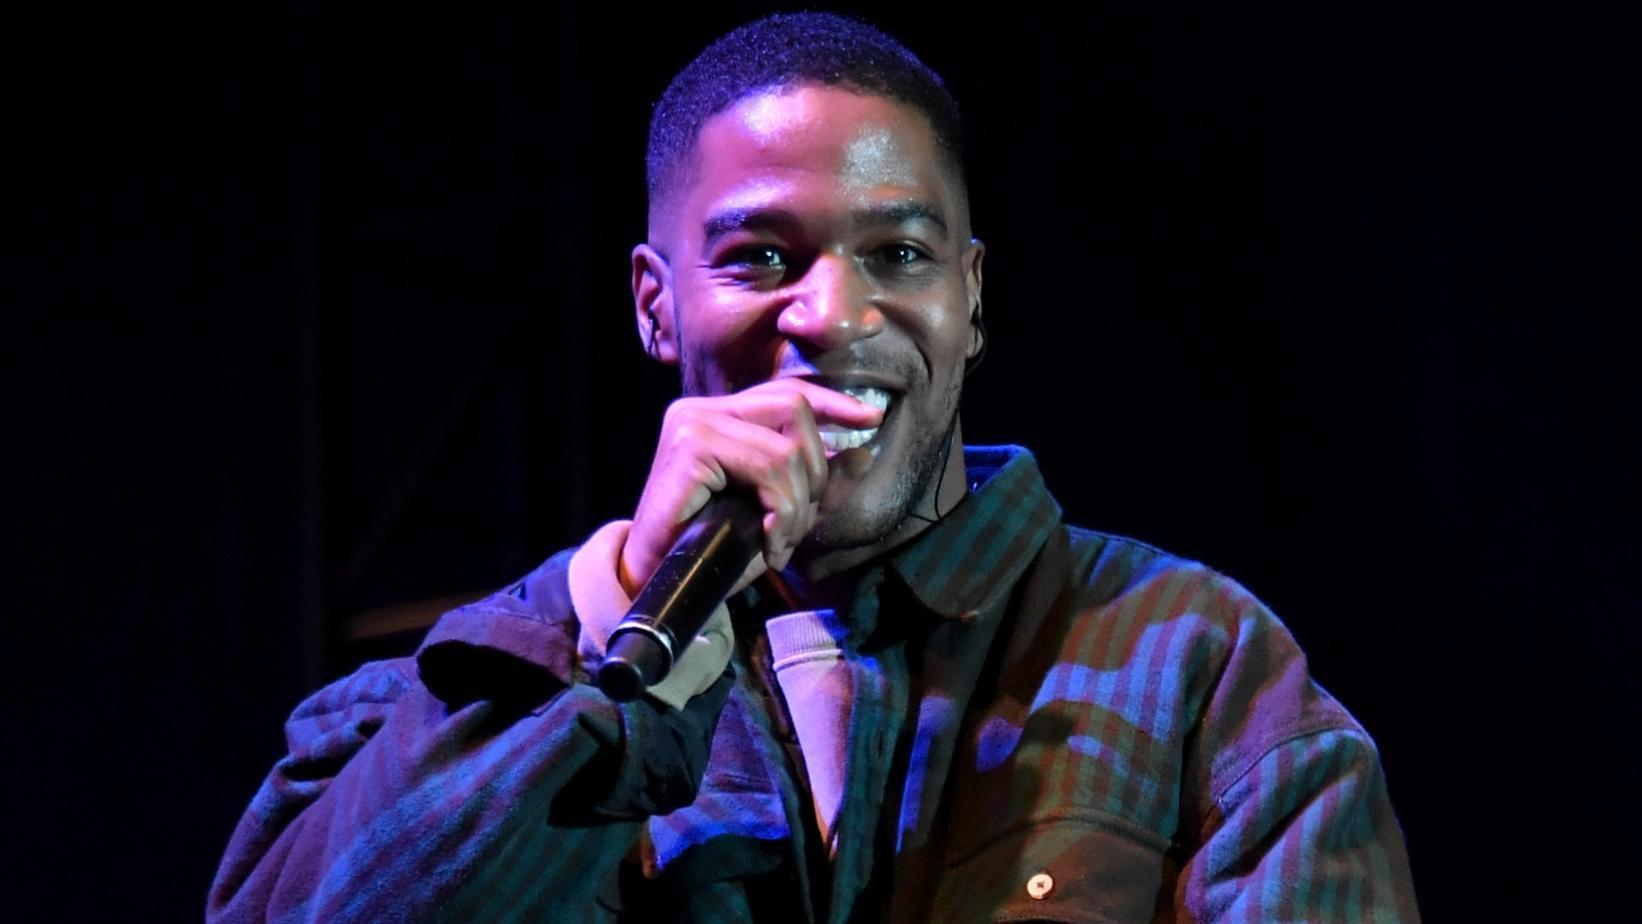 Kid Cudi And Kenya Barris Are Gearing Up For A New Animated Music Series